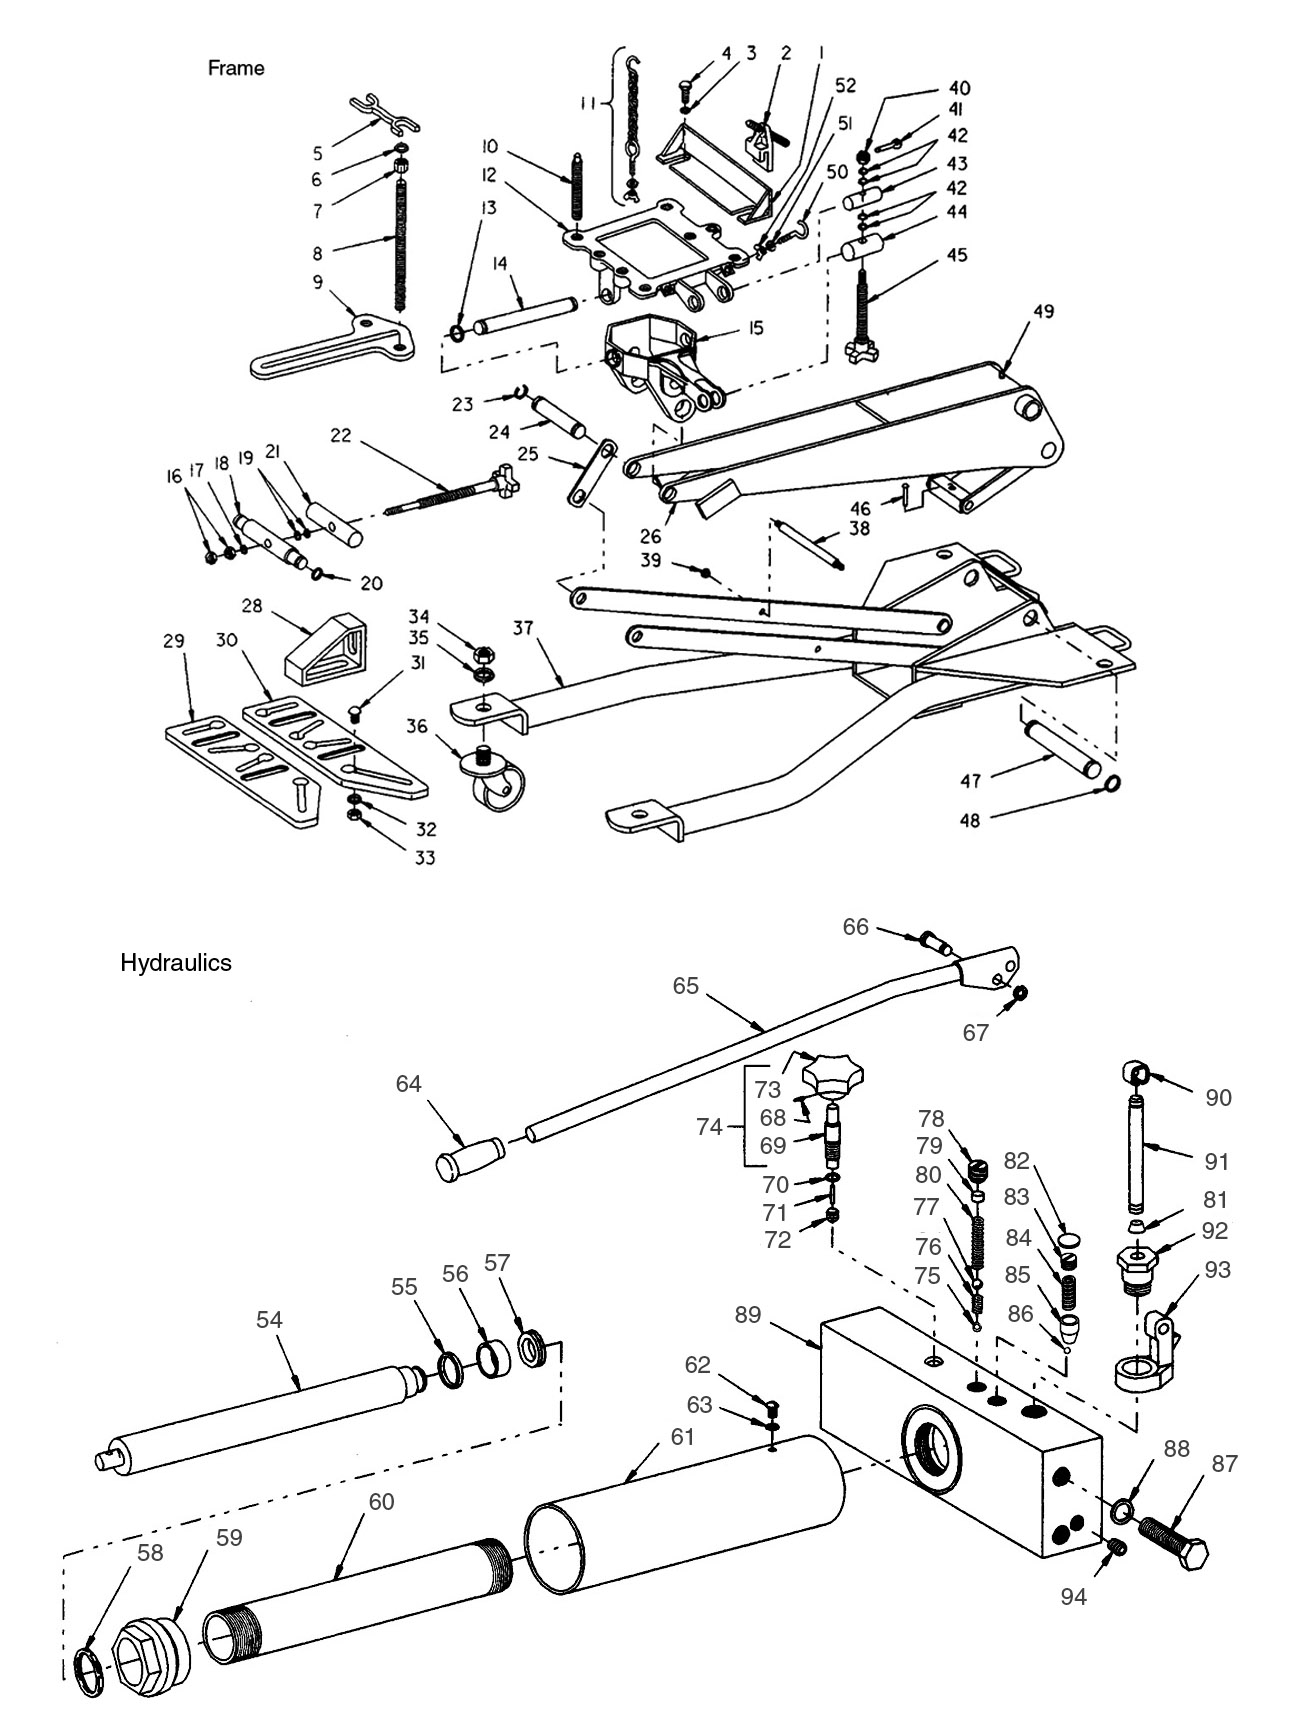 blackhawk floor jack parts diagram 3 phase air conditioning wiring hydraulic replacement bing images